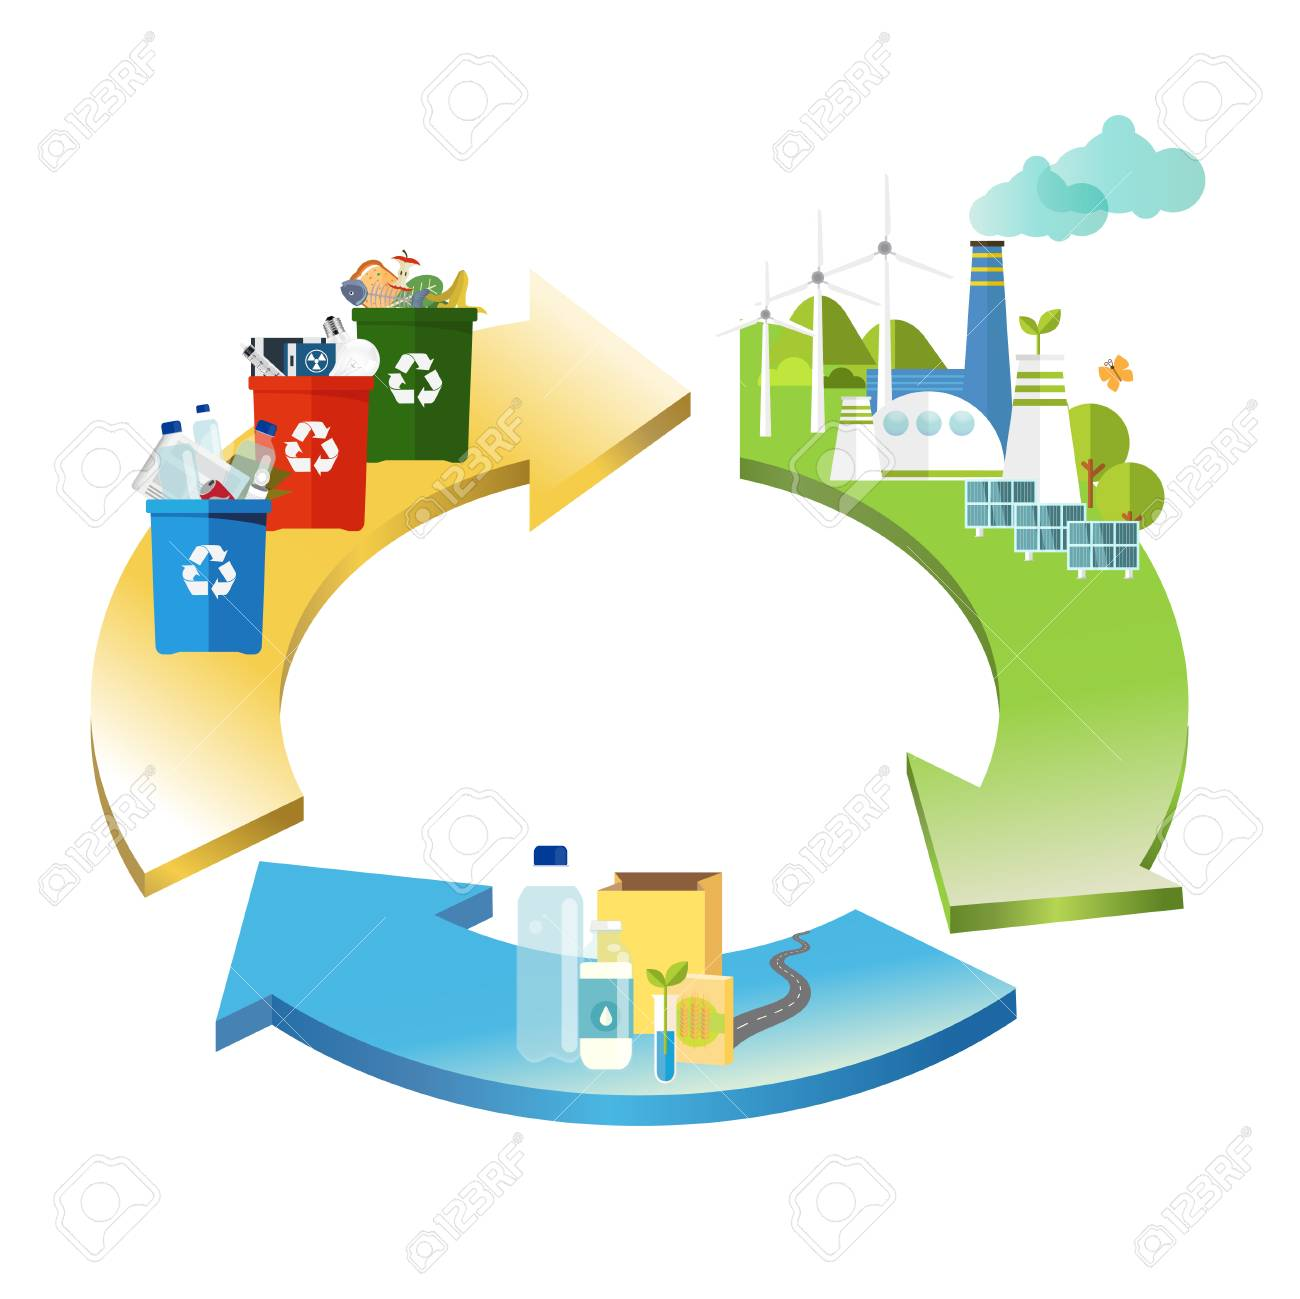 circular economy. product is recycled. management concept. - 121182805